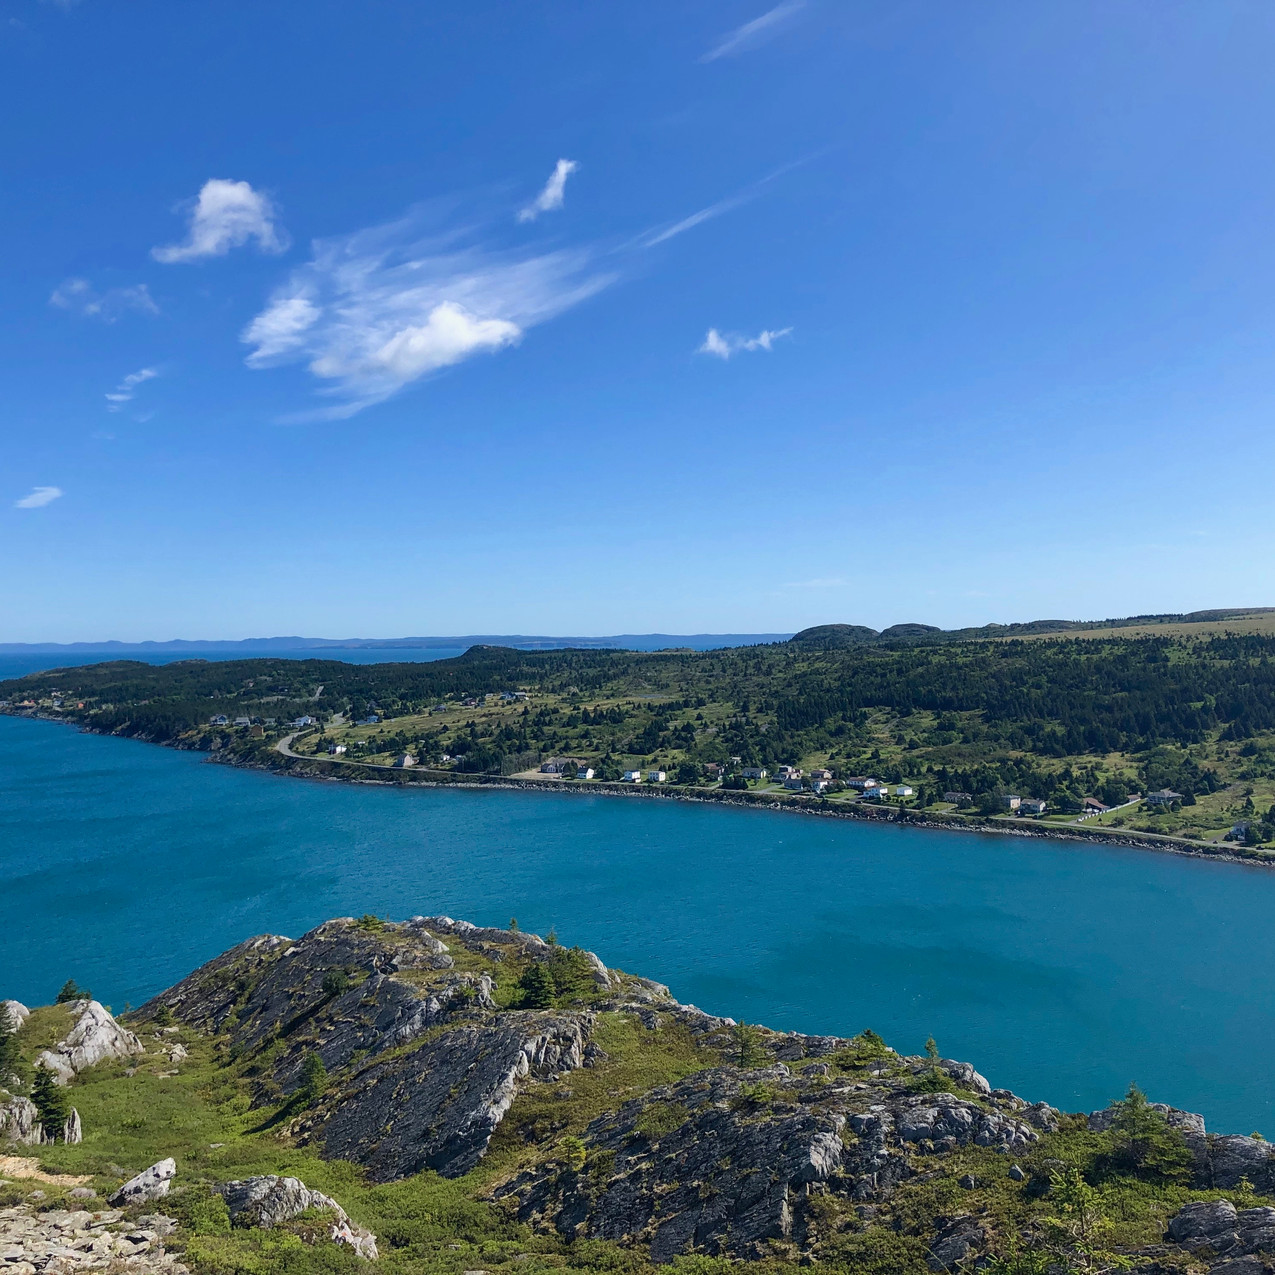 cupids cove view of turquoise waters and blue skies